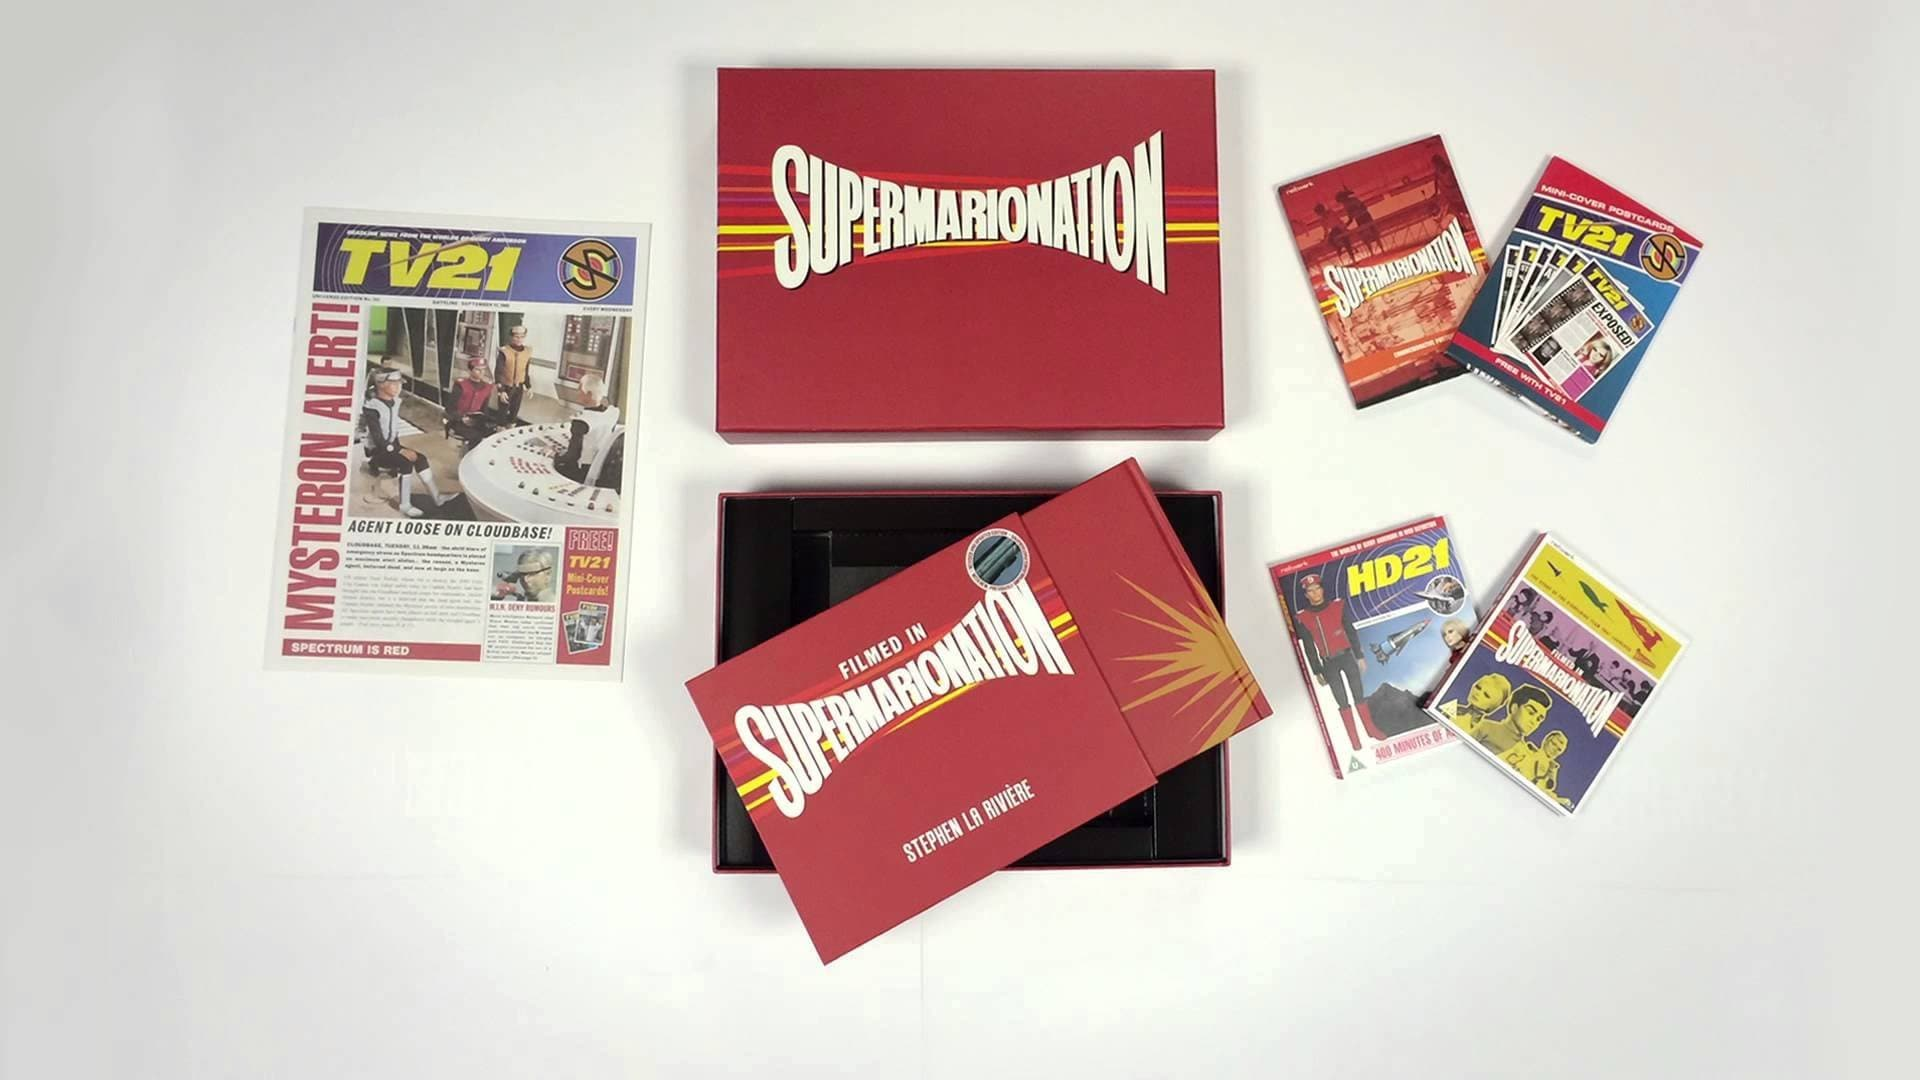 Supermarionation Box Set [Limited edition of 2,500] - The Gerry Anderson Store